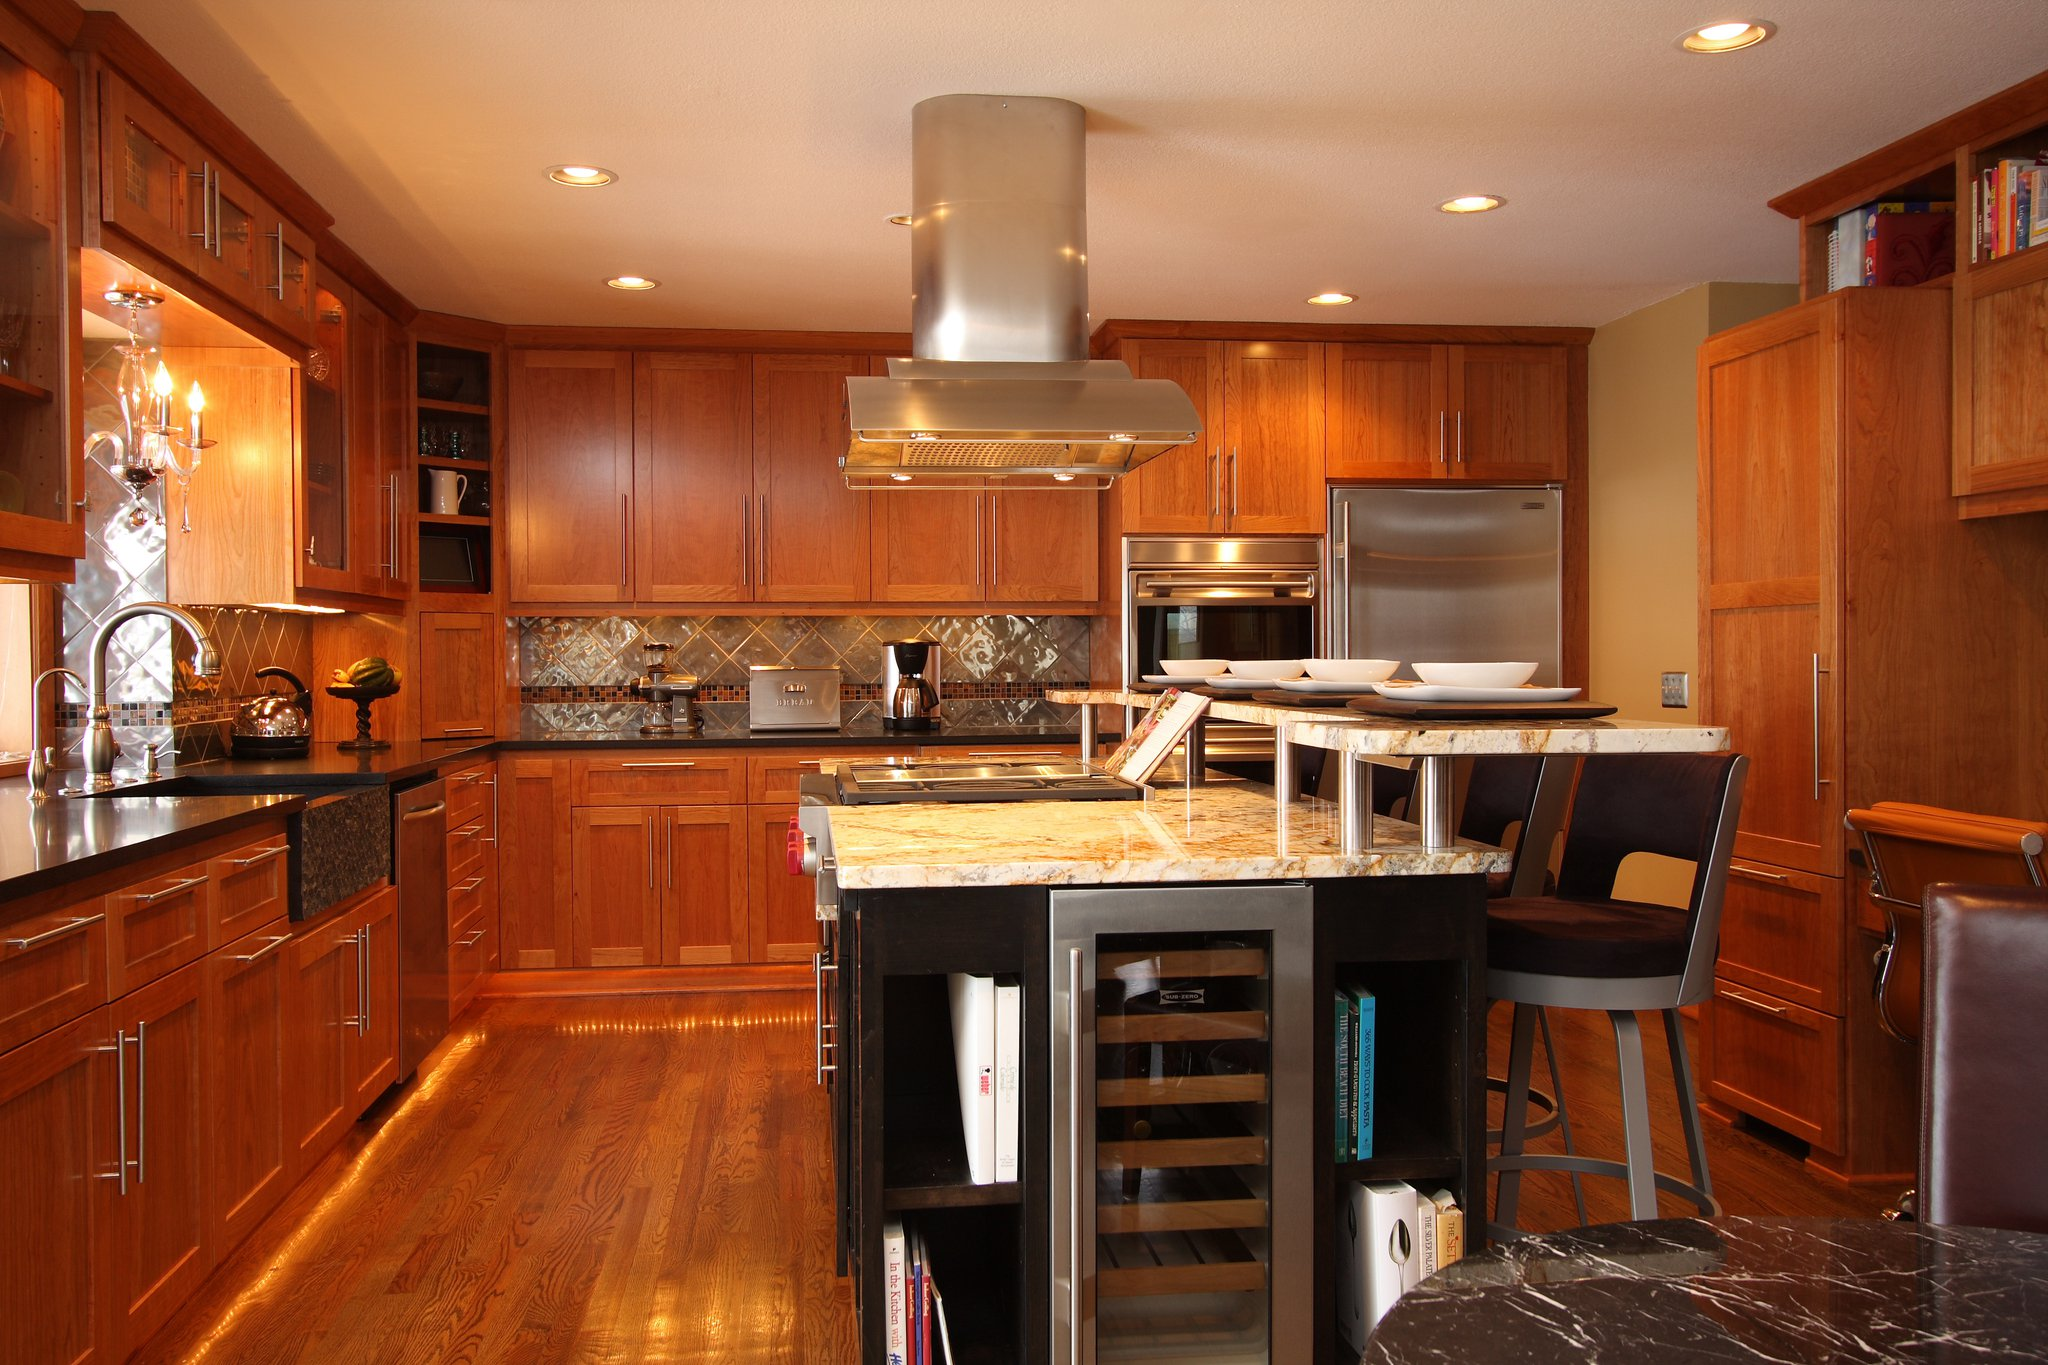 Mn custom kitchen cabinets and countertops custom kitchen island for Kitchen cabinet with island design